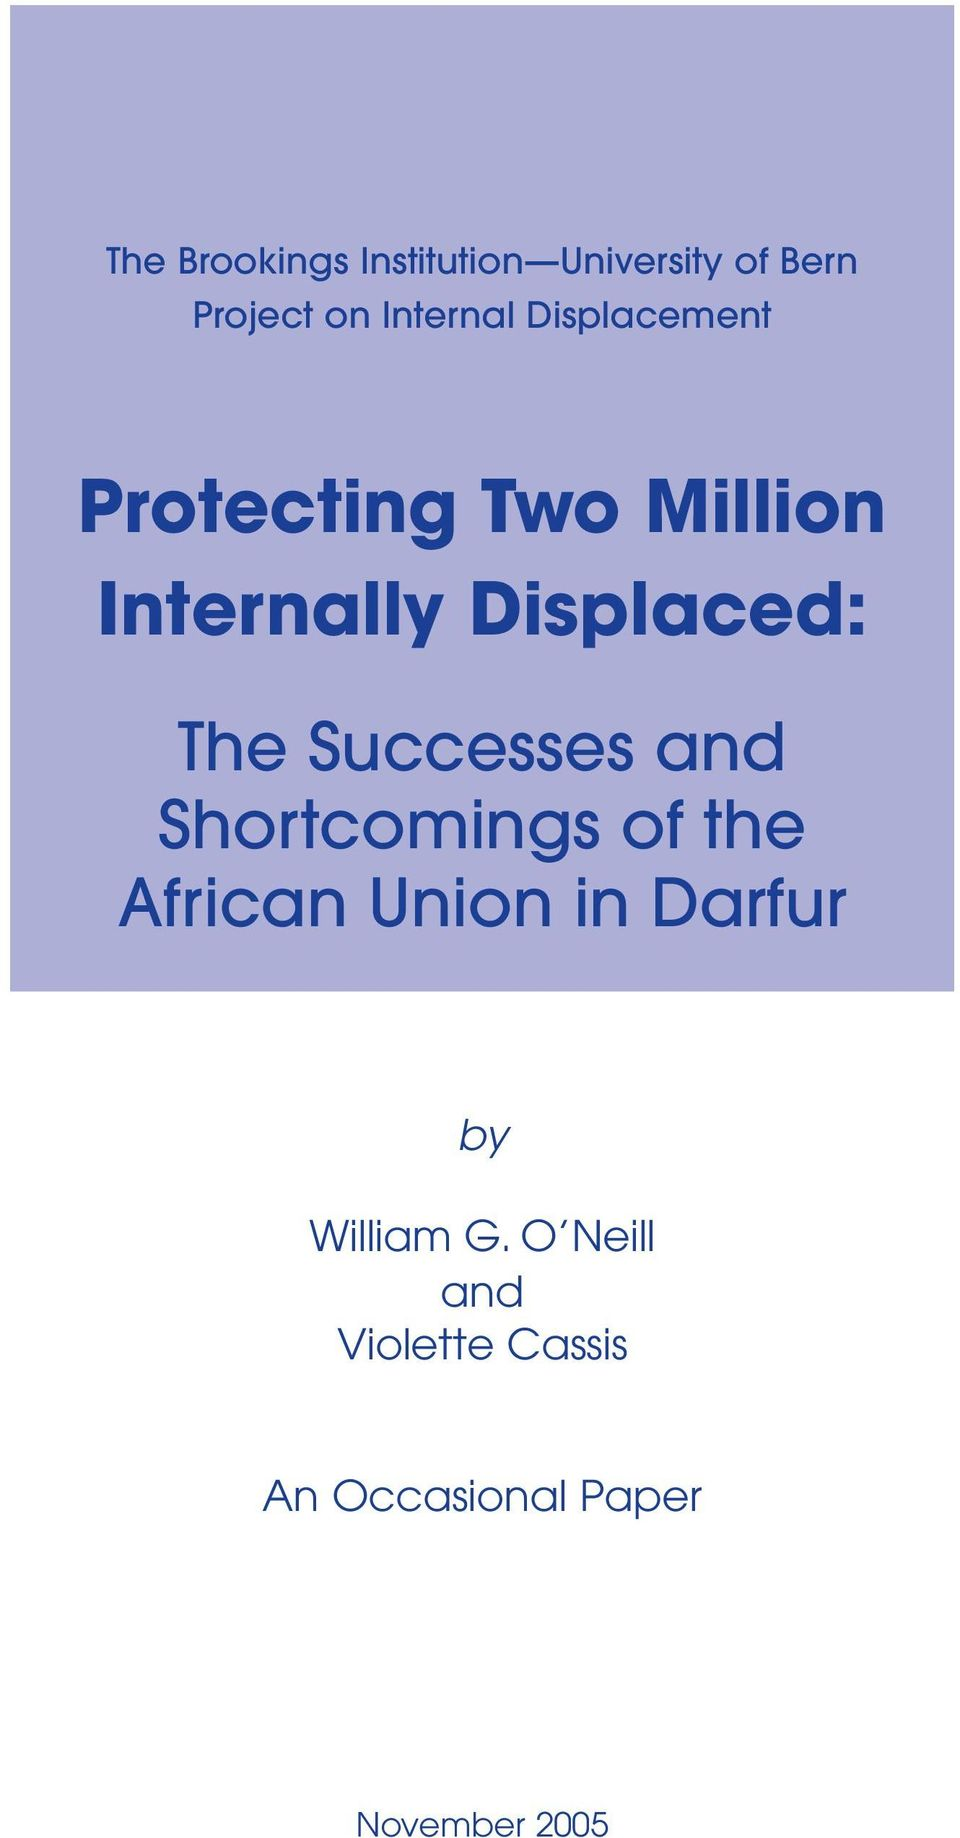 Successes and Shortcomings of the African Union in Darfur by